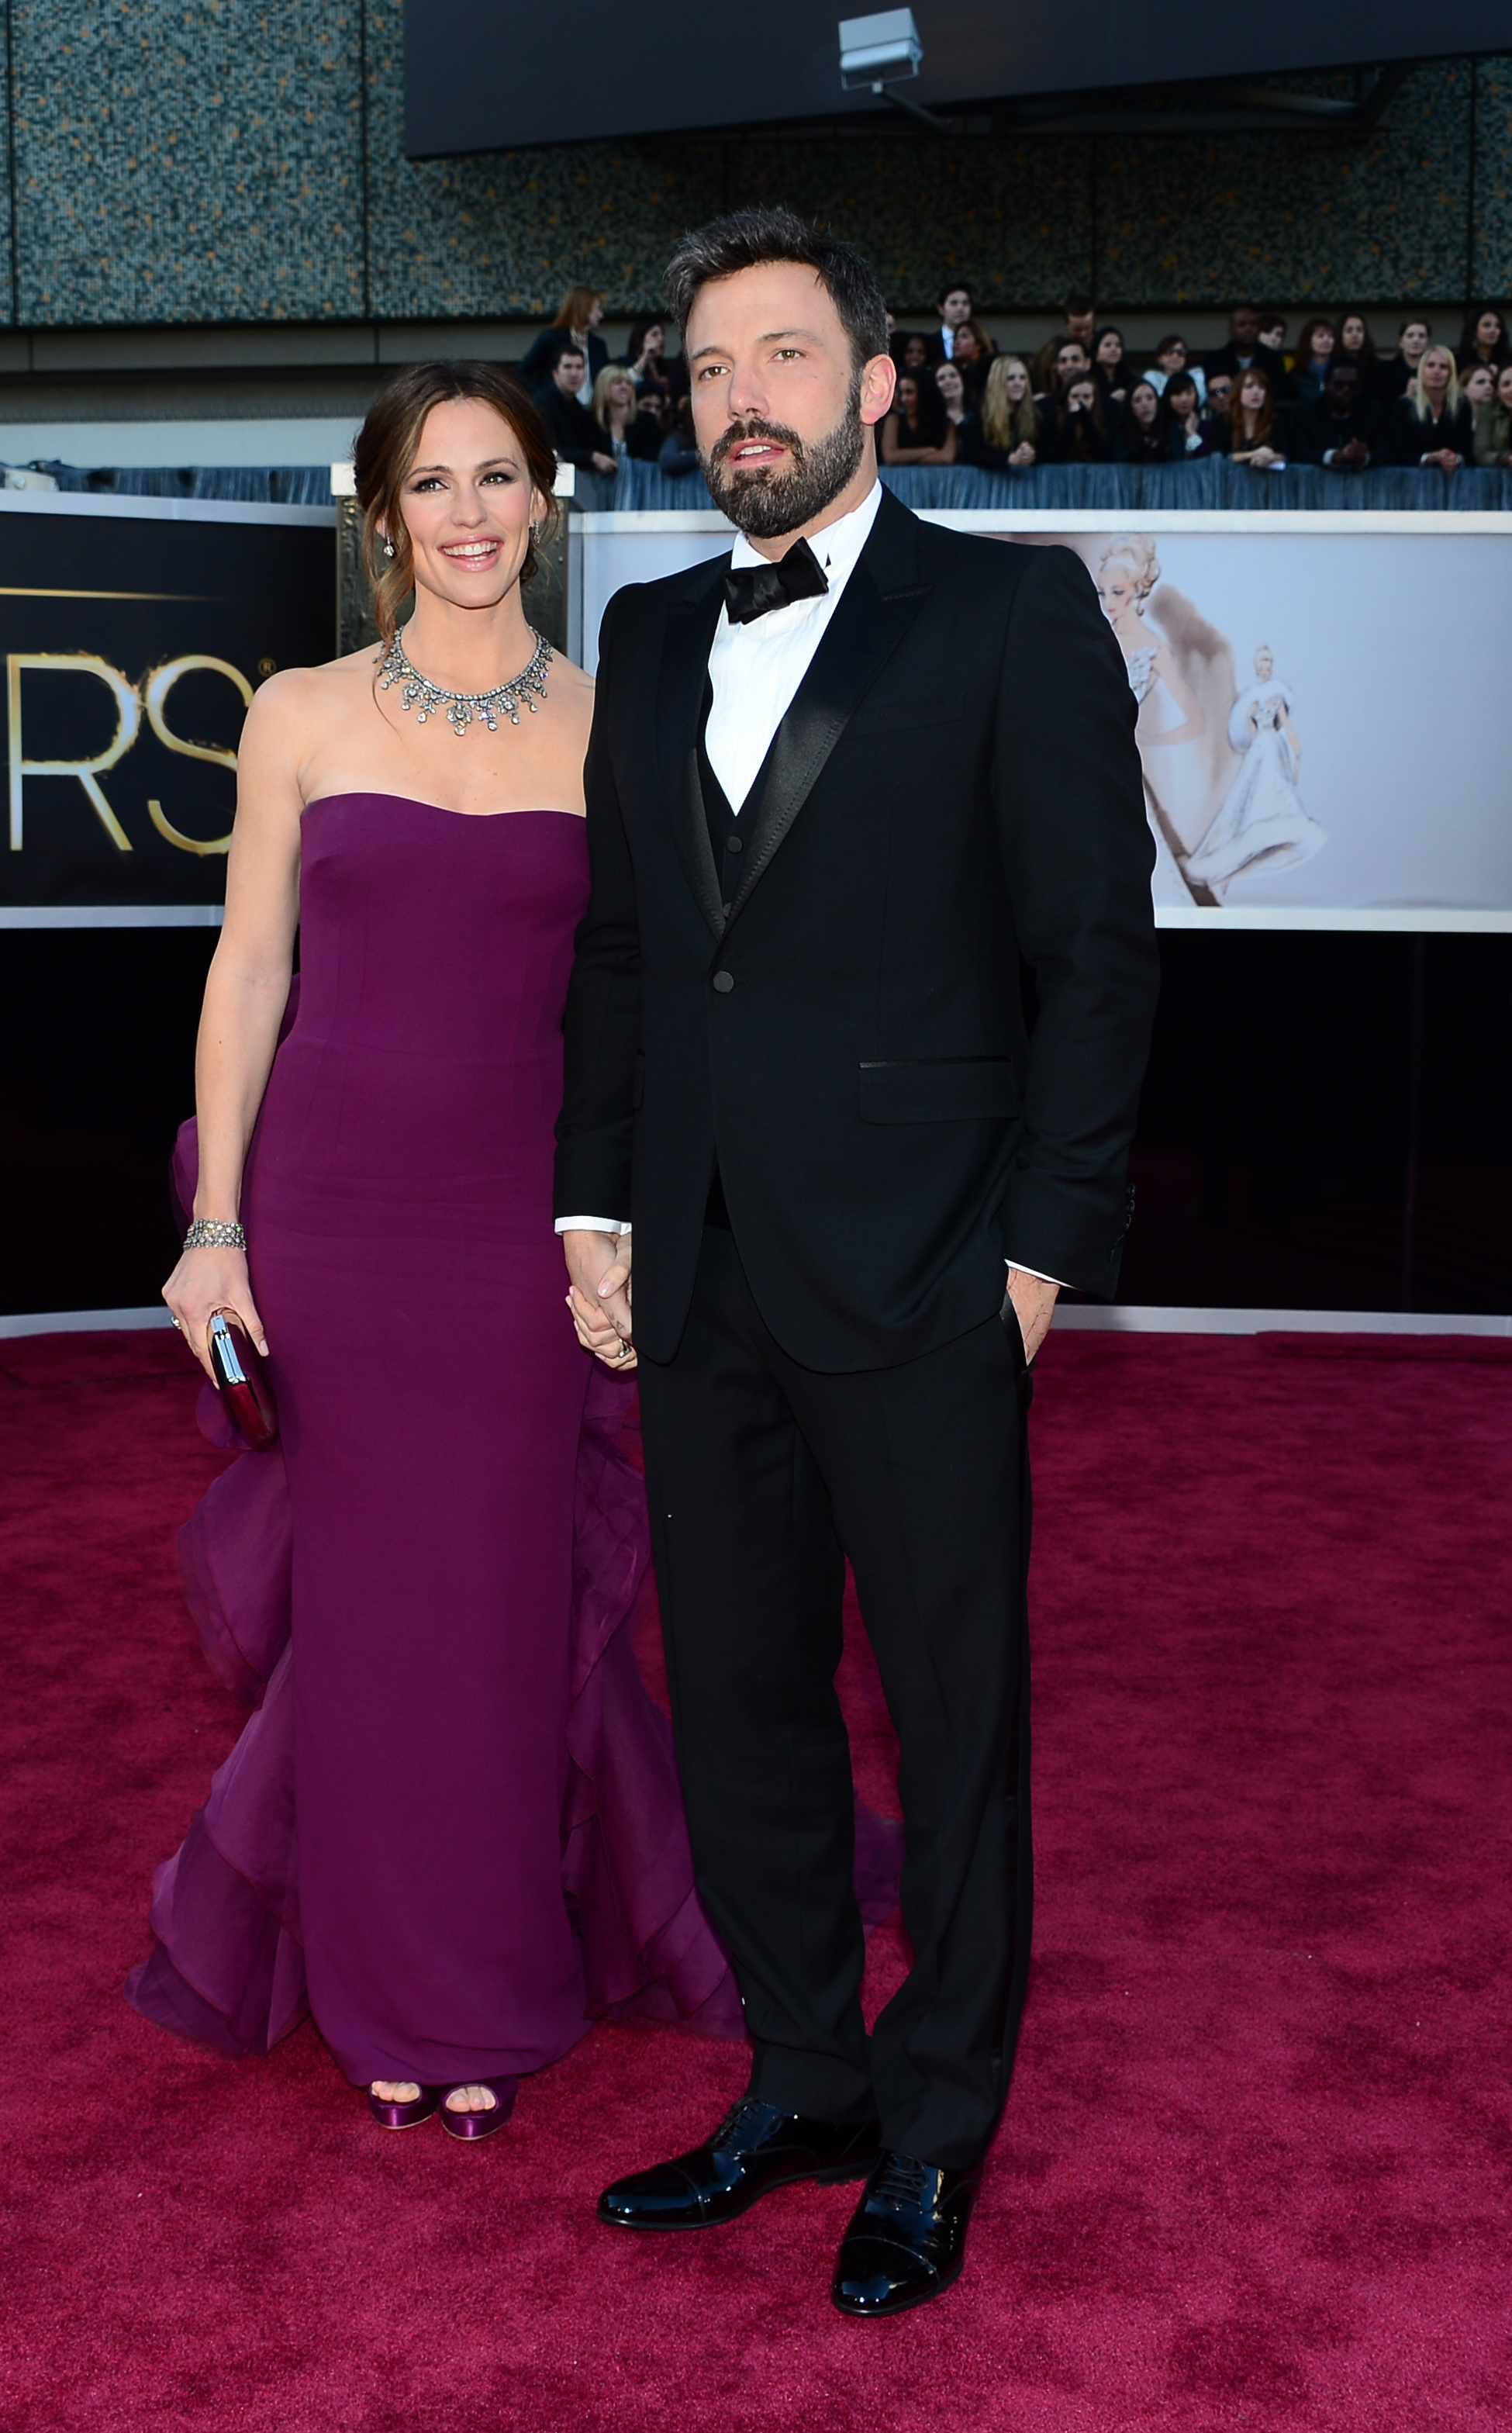 Ben Affleck and his wife, Jennifer Garner